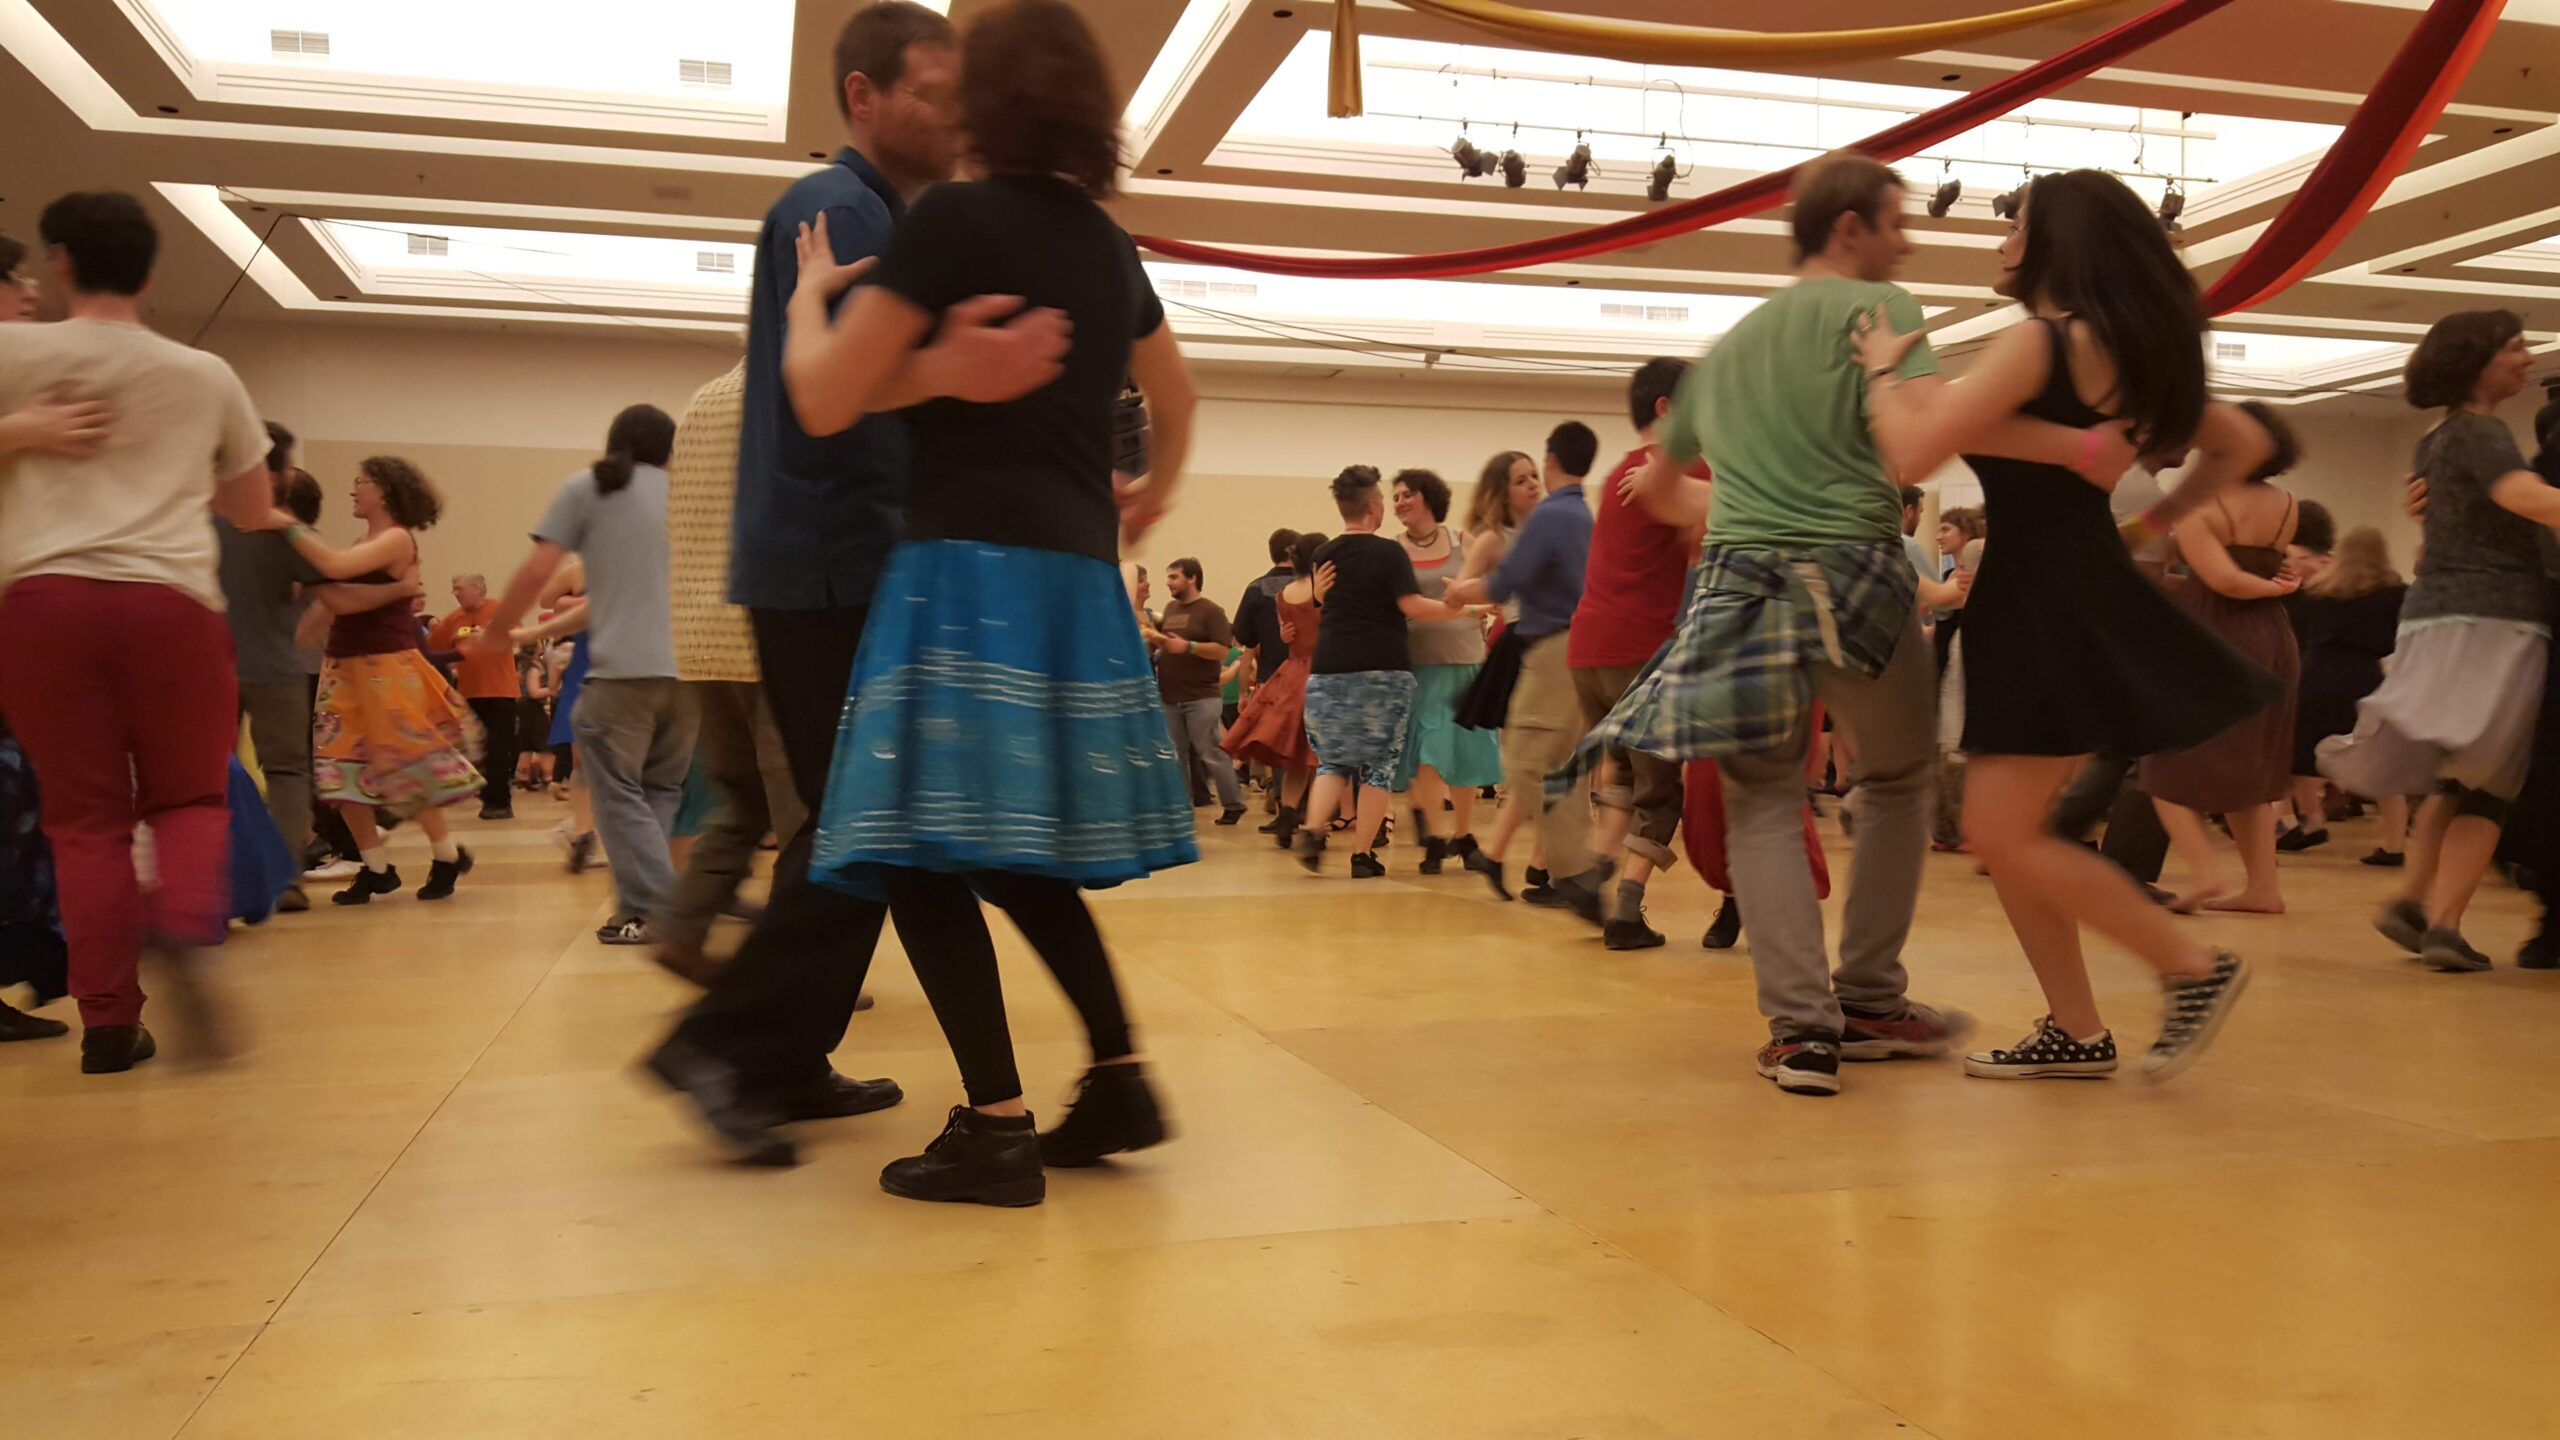 Image of lines of people contra dancing in a large room with wooden floors.